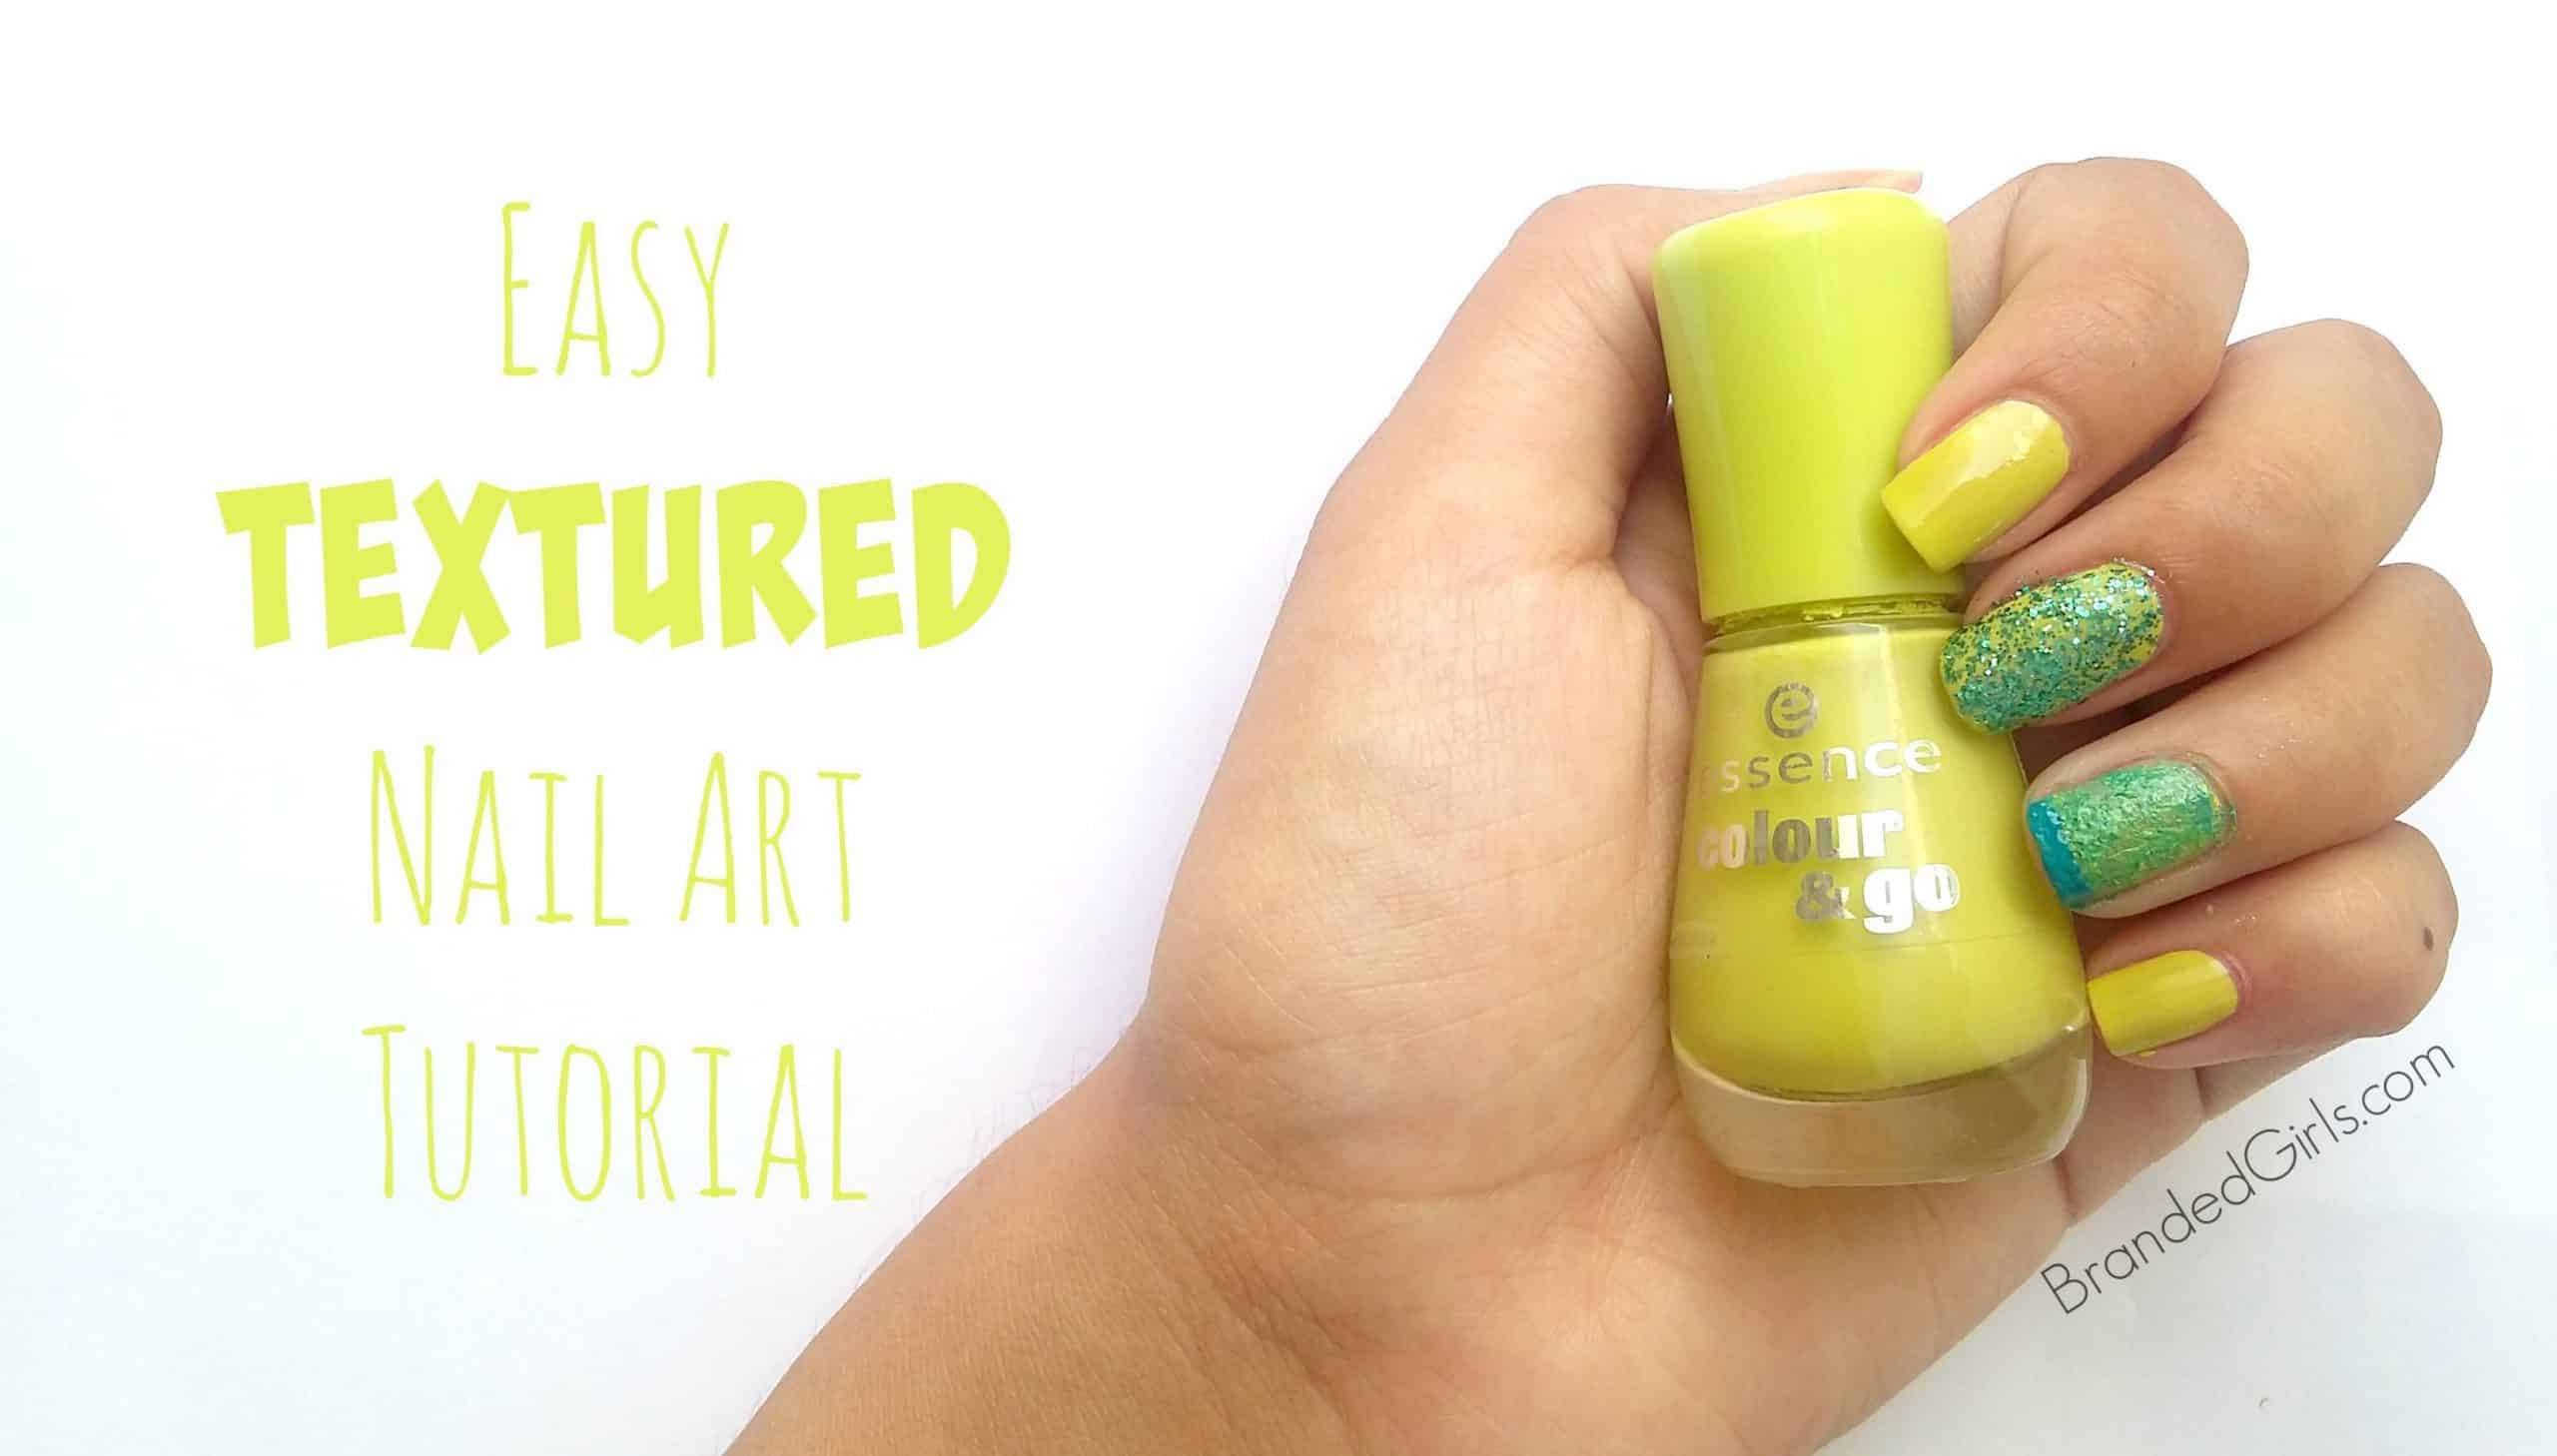 Easy DIY Textured Nail Art Design - Step by Step Tutorial